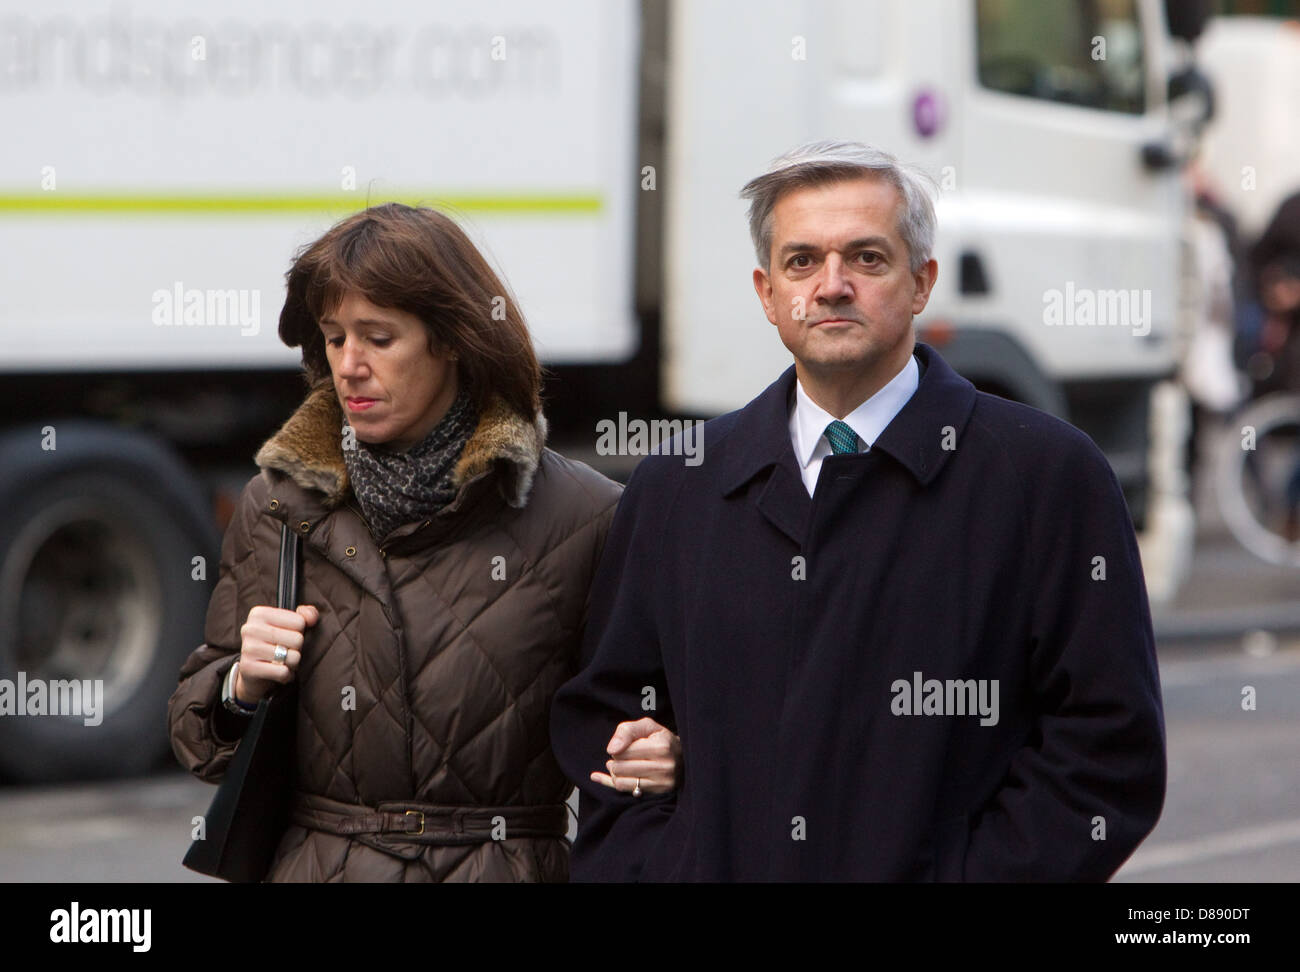 Chris Huhne and Carina Trimingham arriving at Southwark Crown Court 4th February 2013 - Stock Image